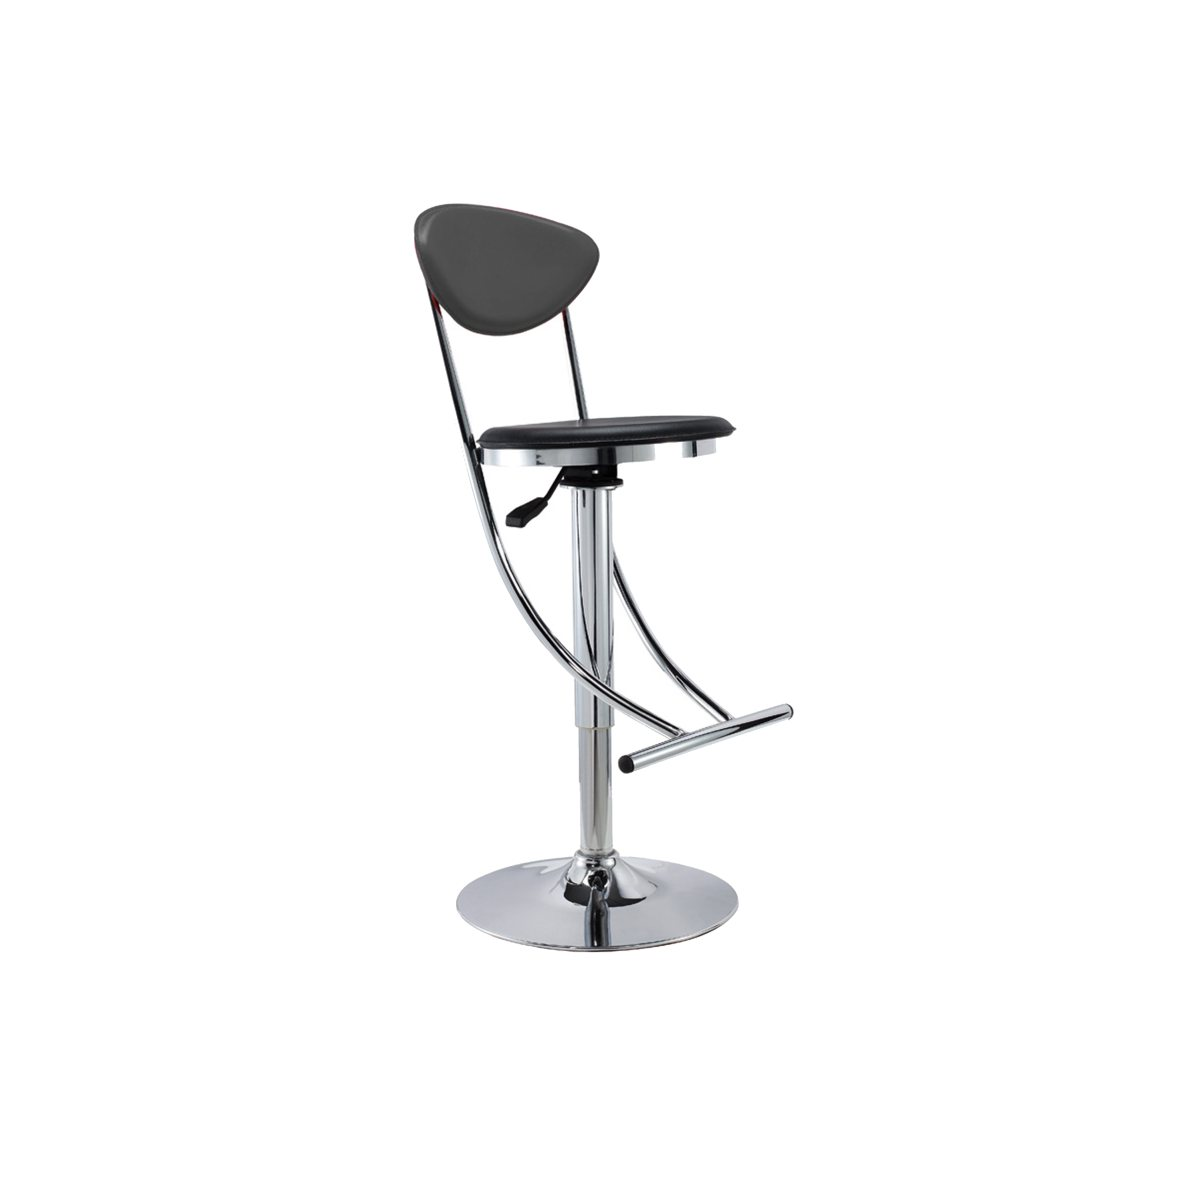 Marchepied Pliant Carrefour Stunning Tabouret De Bar Pas Cher With Tabouret De Bar